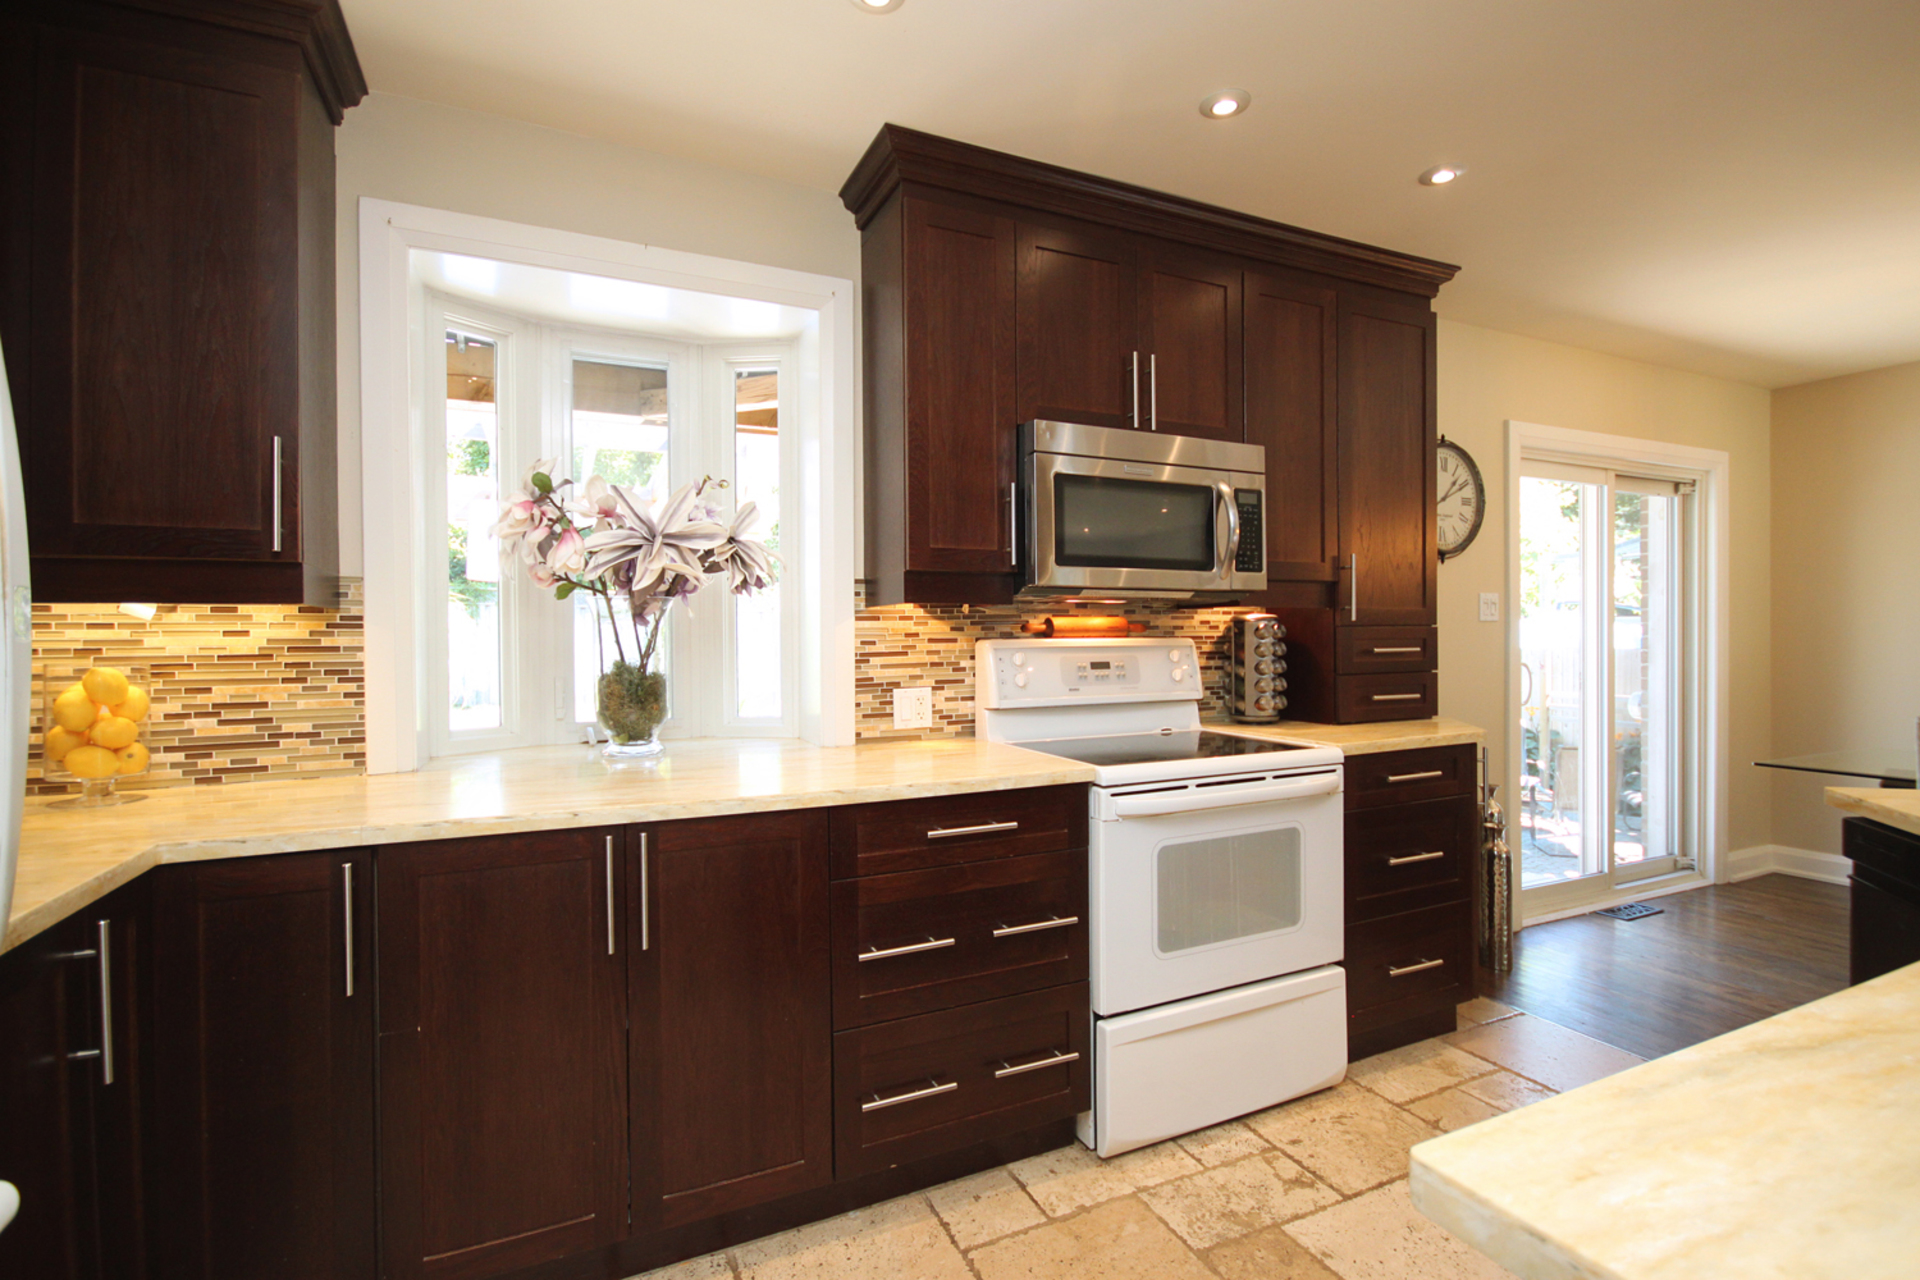 Kitchen at 1 Groveland Crescent, Parkwoods-Donalda, Toronto